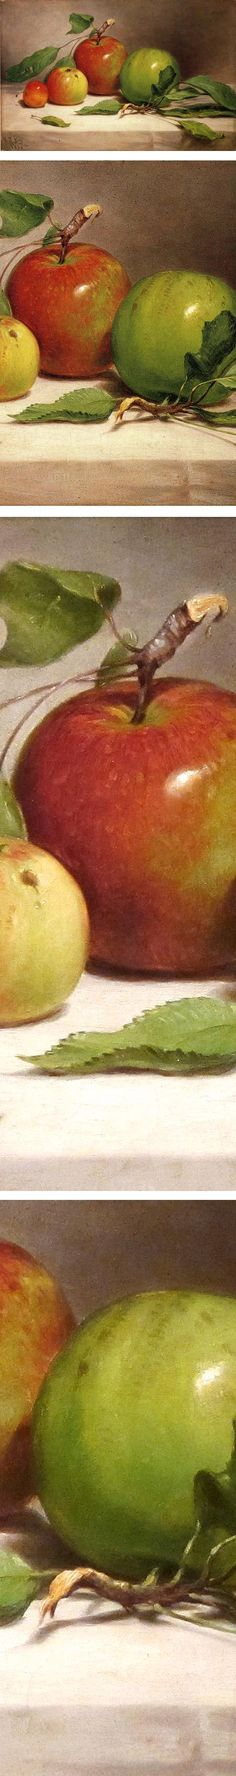 Still Life - Study of Apples, William Rickarby Miller